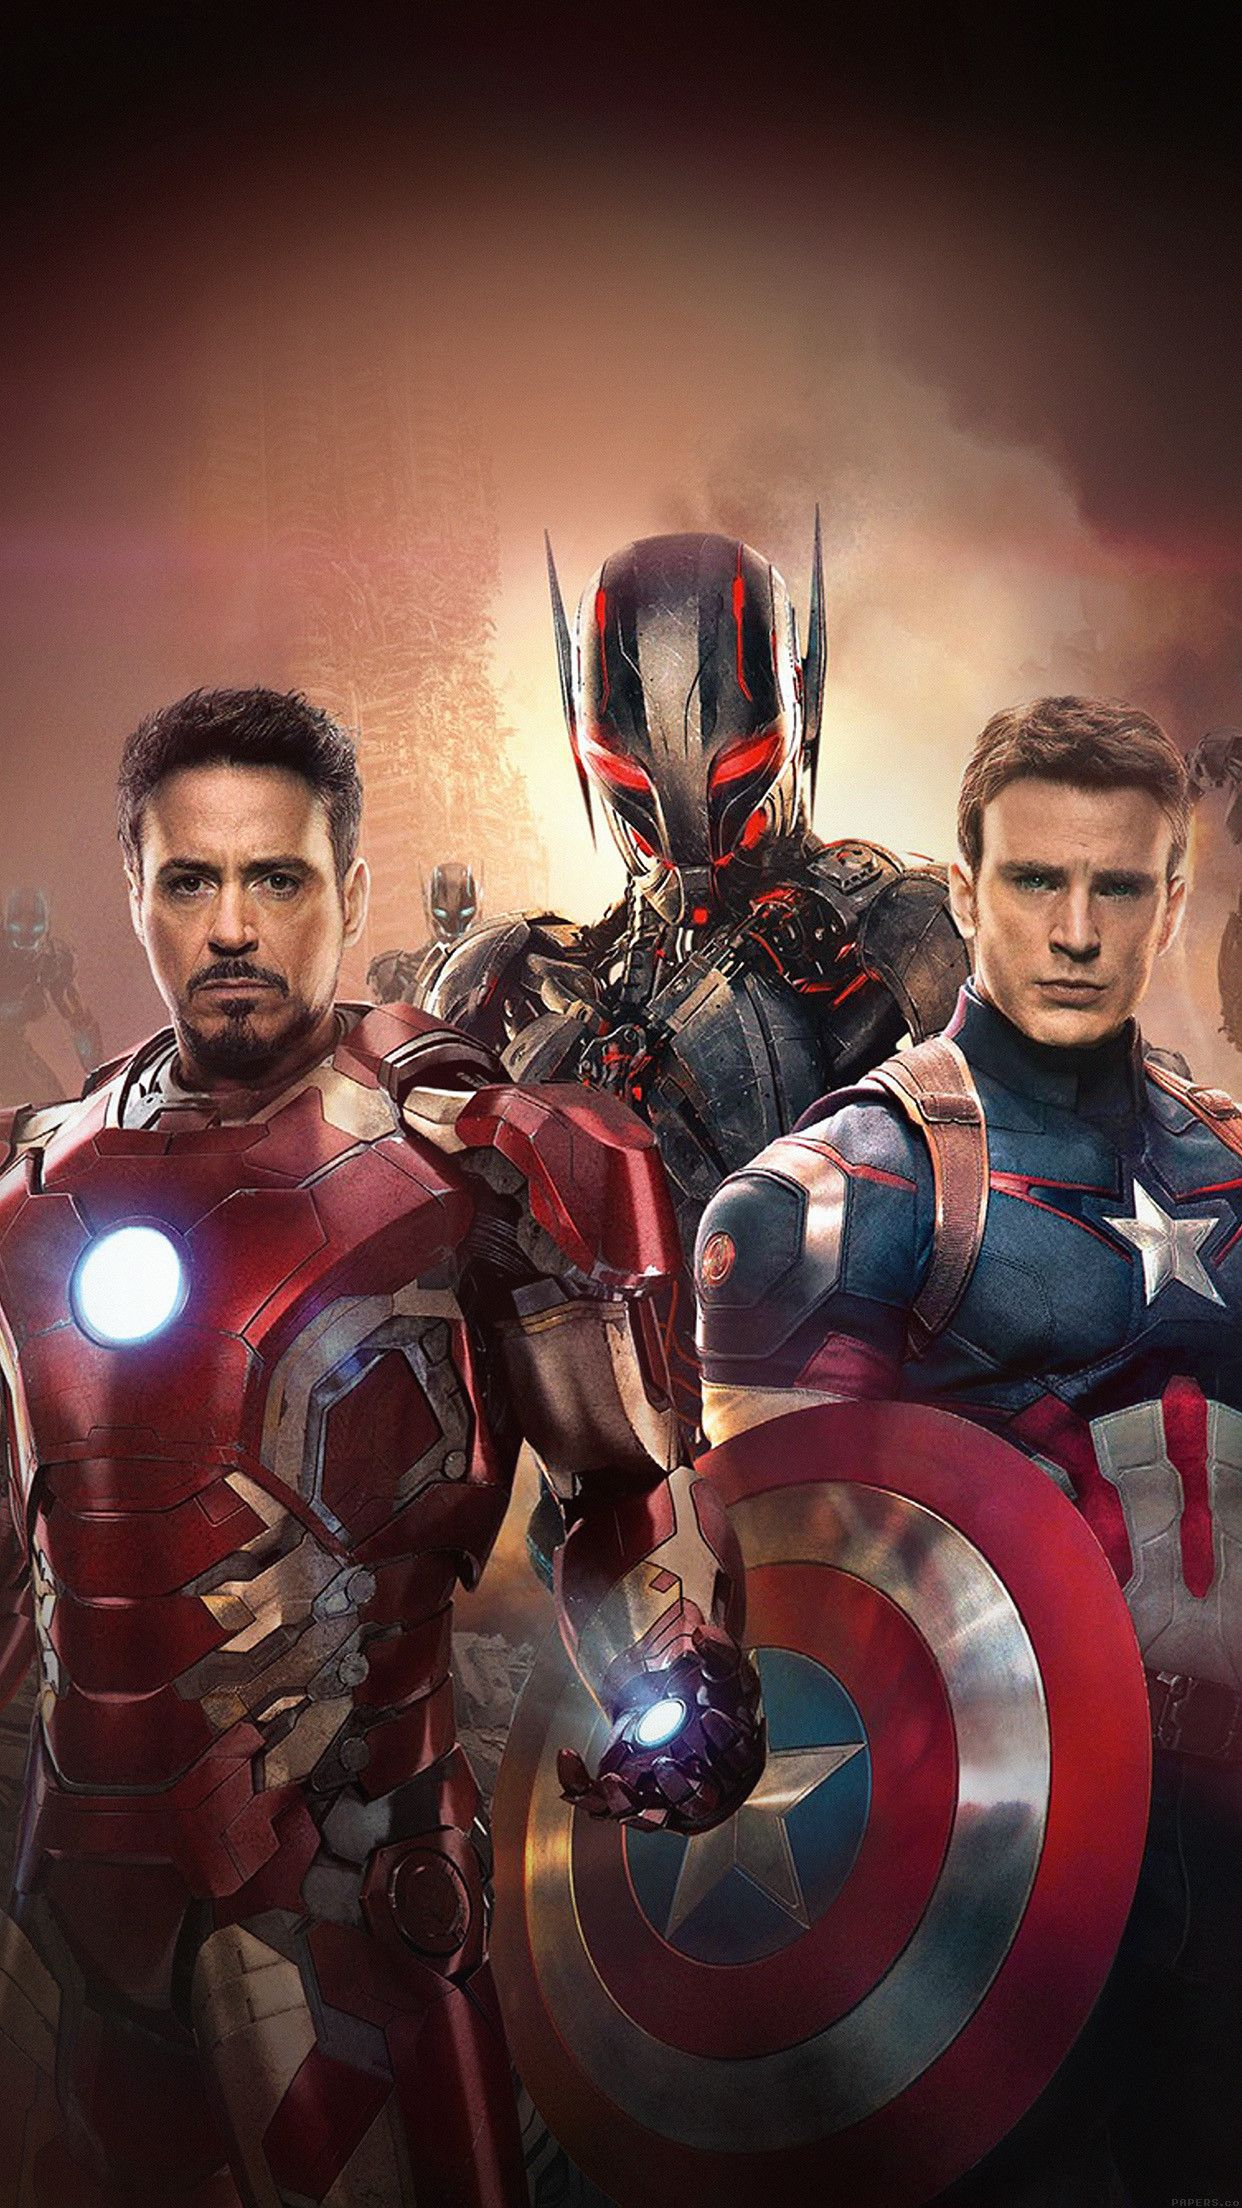 10 Avengers Movie 2 Wallpapers Avengers Avengers Movies Avengers Pictures